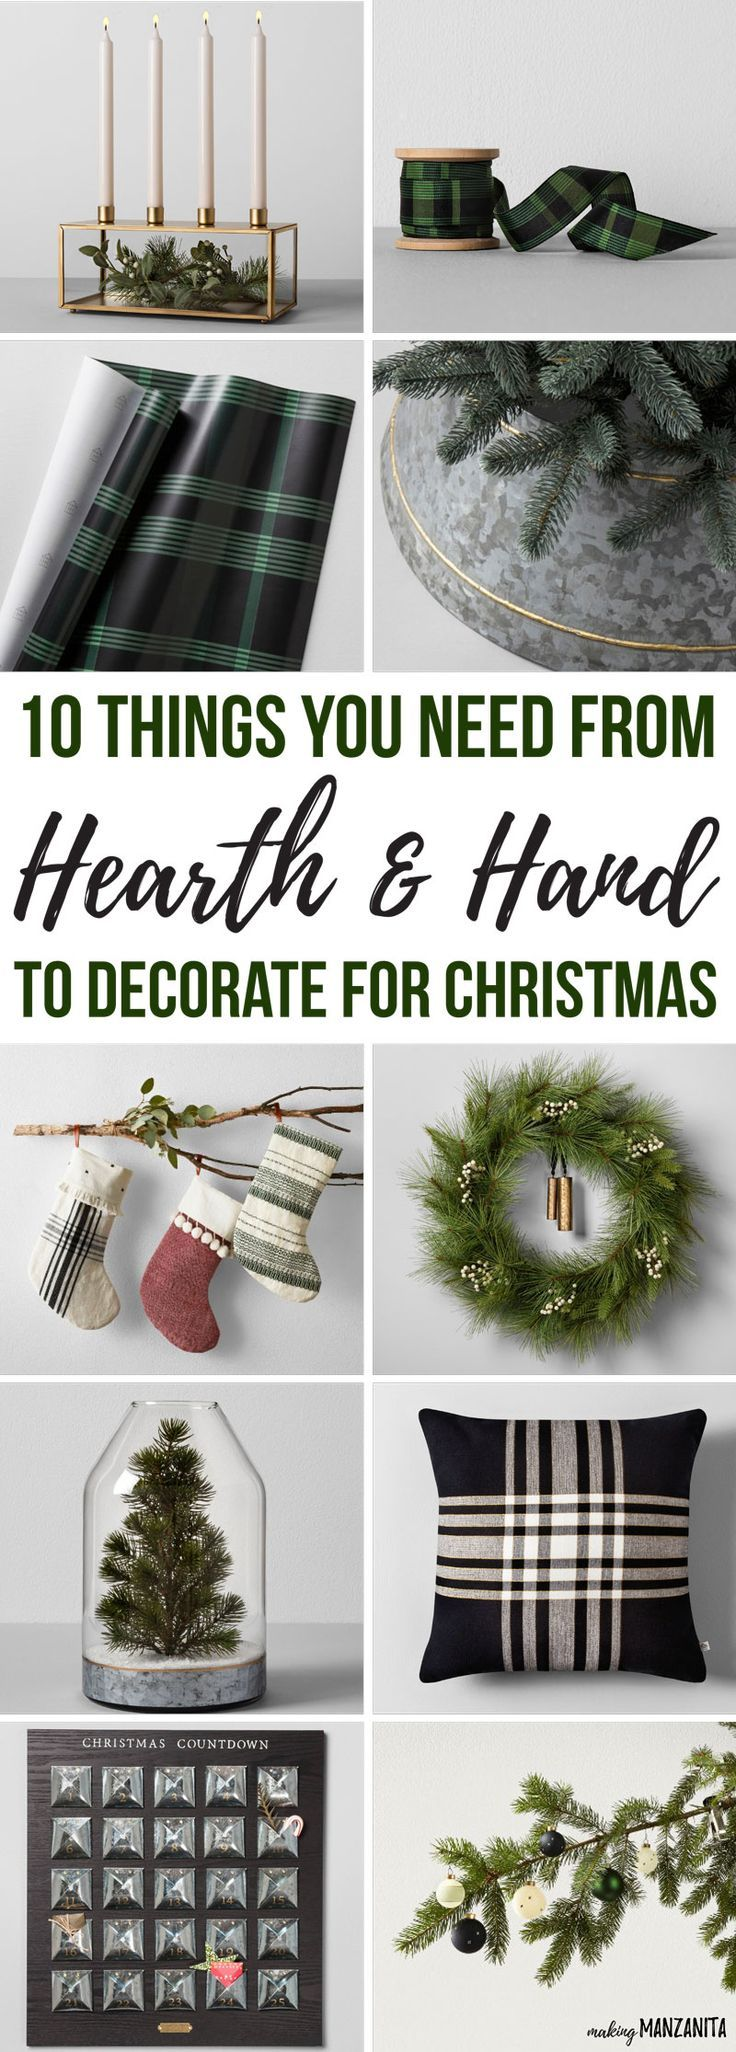 10 Things You Need From Hearth and Hand to Decorate for Christmas | Hearth & Hand with Magnolia at Target | Chip and Joanna Gaines new home decor line sold at Target | Decorating for Christmas on a budget in your living room | Modern farmhouse Christmas tree | Black and white holiday decor ideas for the kitchen | Green plaid ribbon and wrapping paper | Minimalist Gold candle holder | Galvanized tree skirt | Farmhouse style stockings | Wreath with bell | Mini tree in vase | Pillow